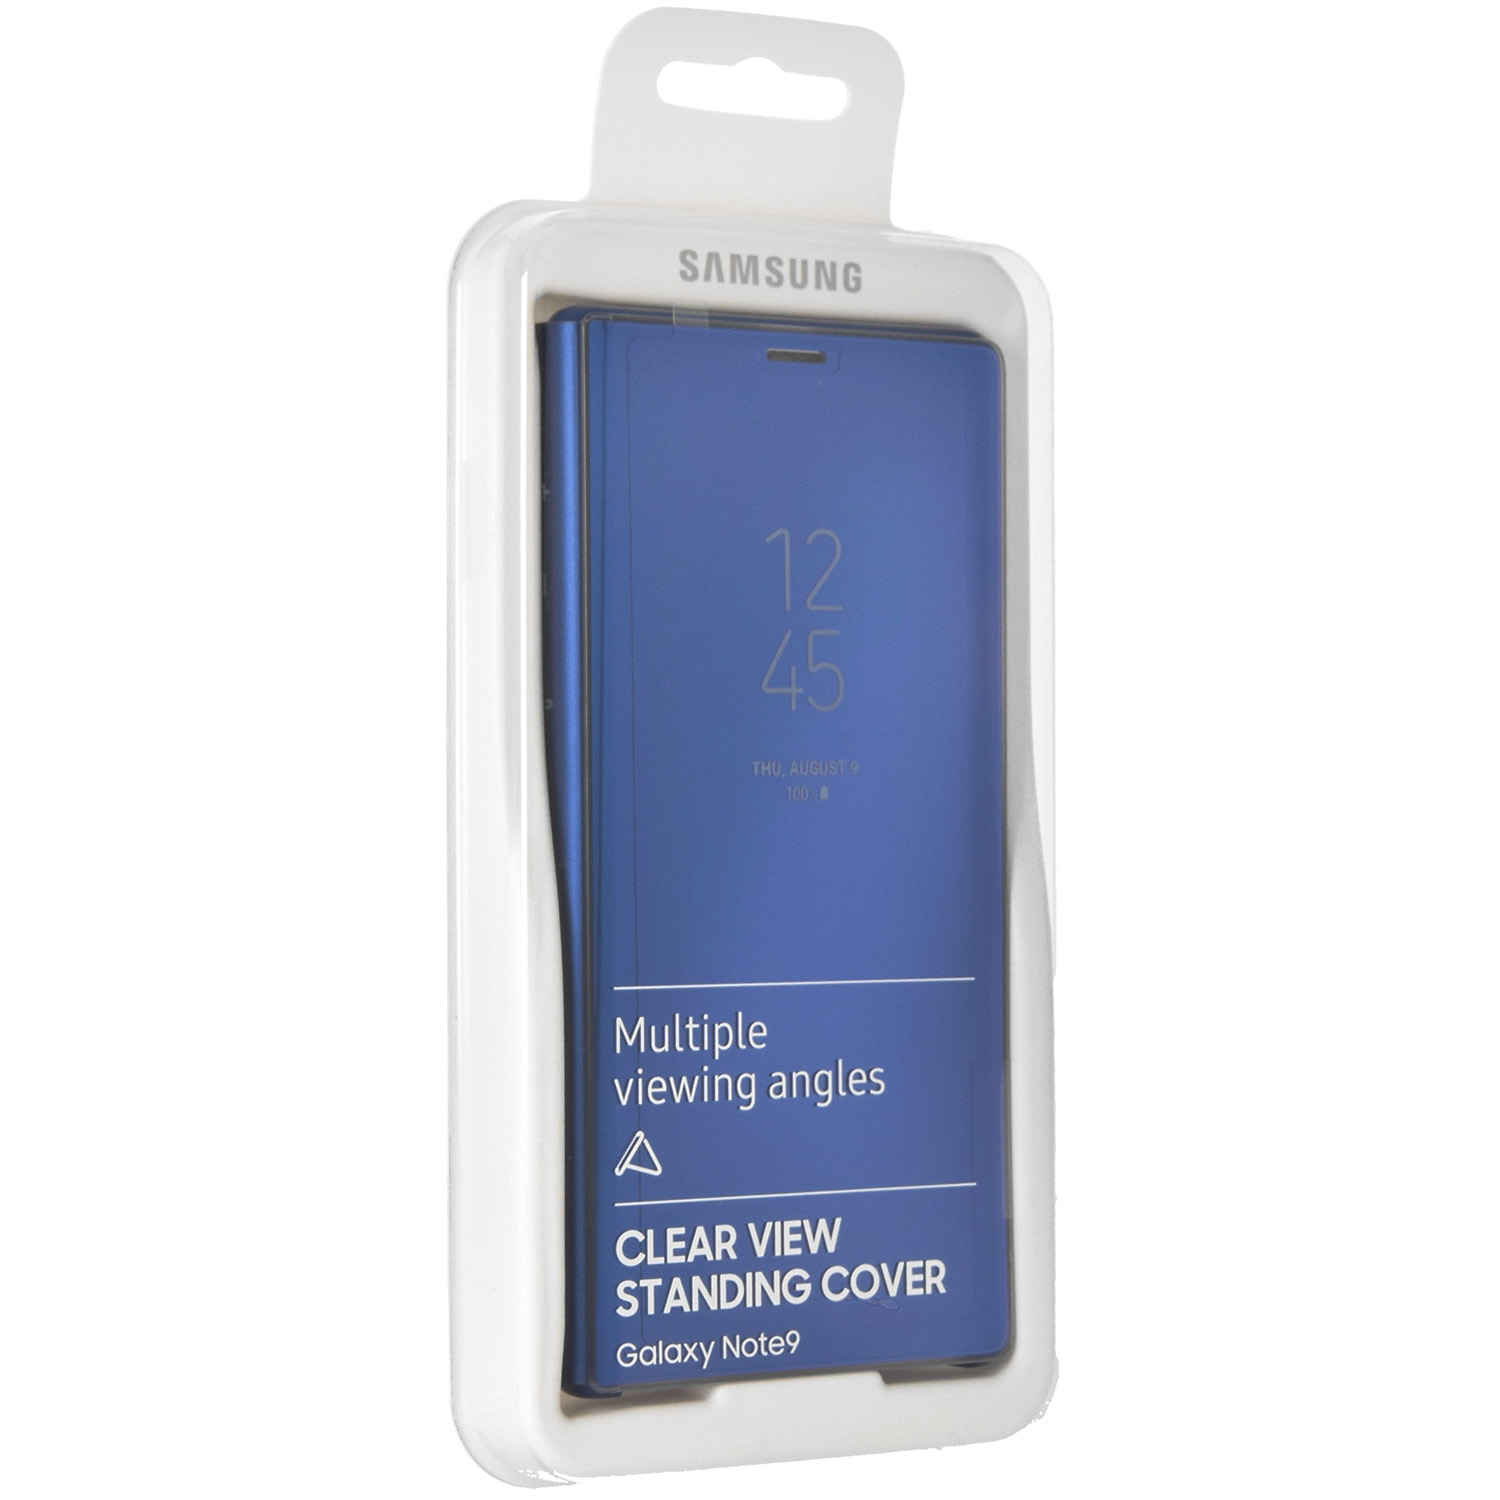 Etui z klapka funkcyjną Samsung Clear View Standing Cover do Galaxy Note 9